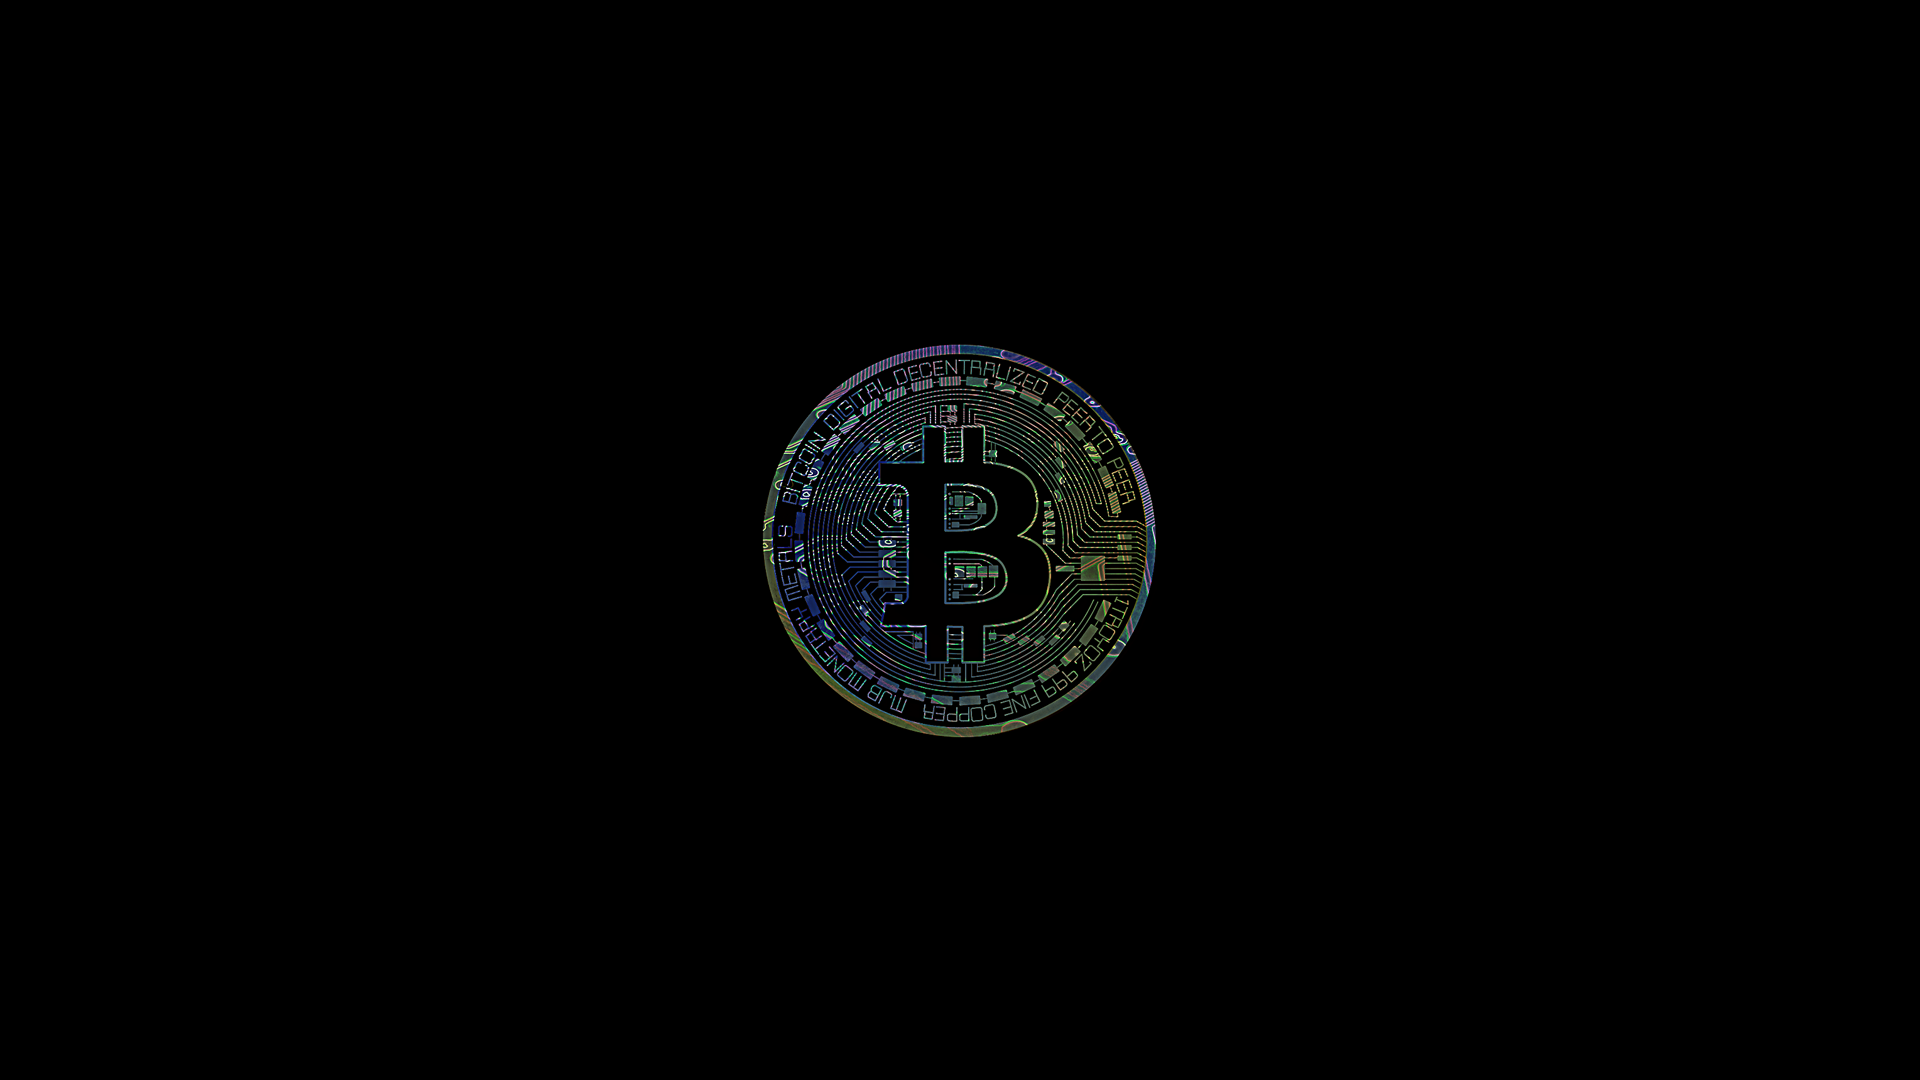 General 1920x1080 Bitcoin cryptocurrency money currency